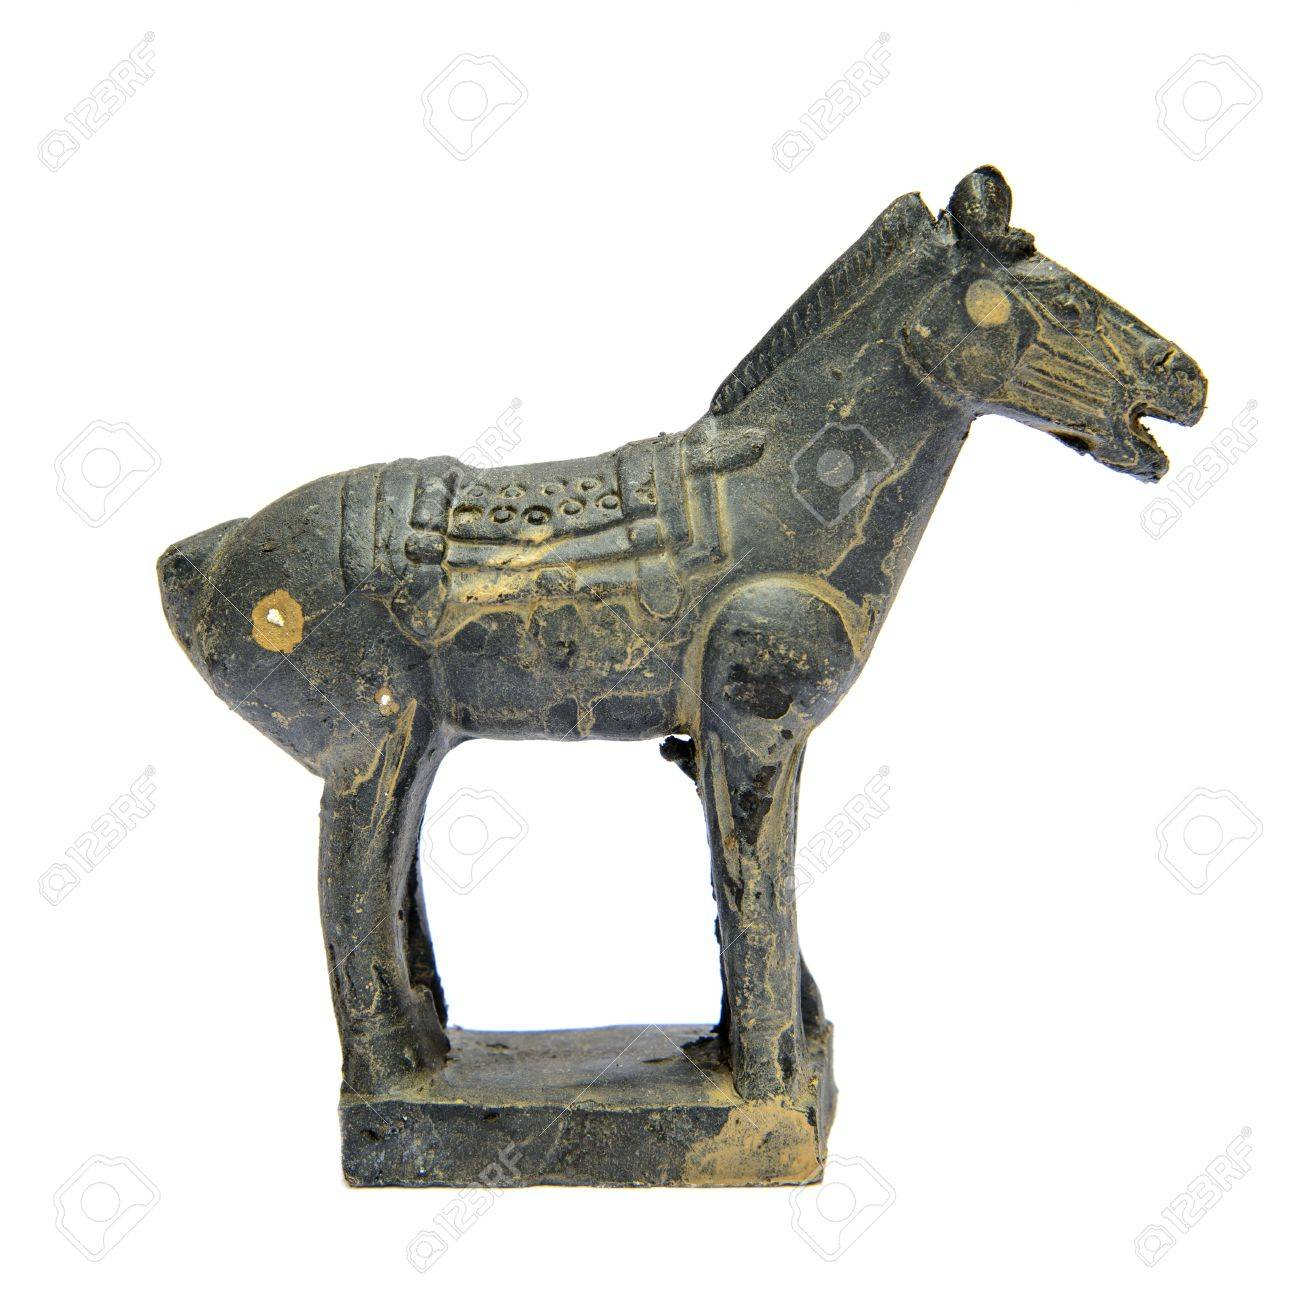 Ancient terracotta sculptures of Chinese warrior horse on white background Stock Photo - 19014645